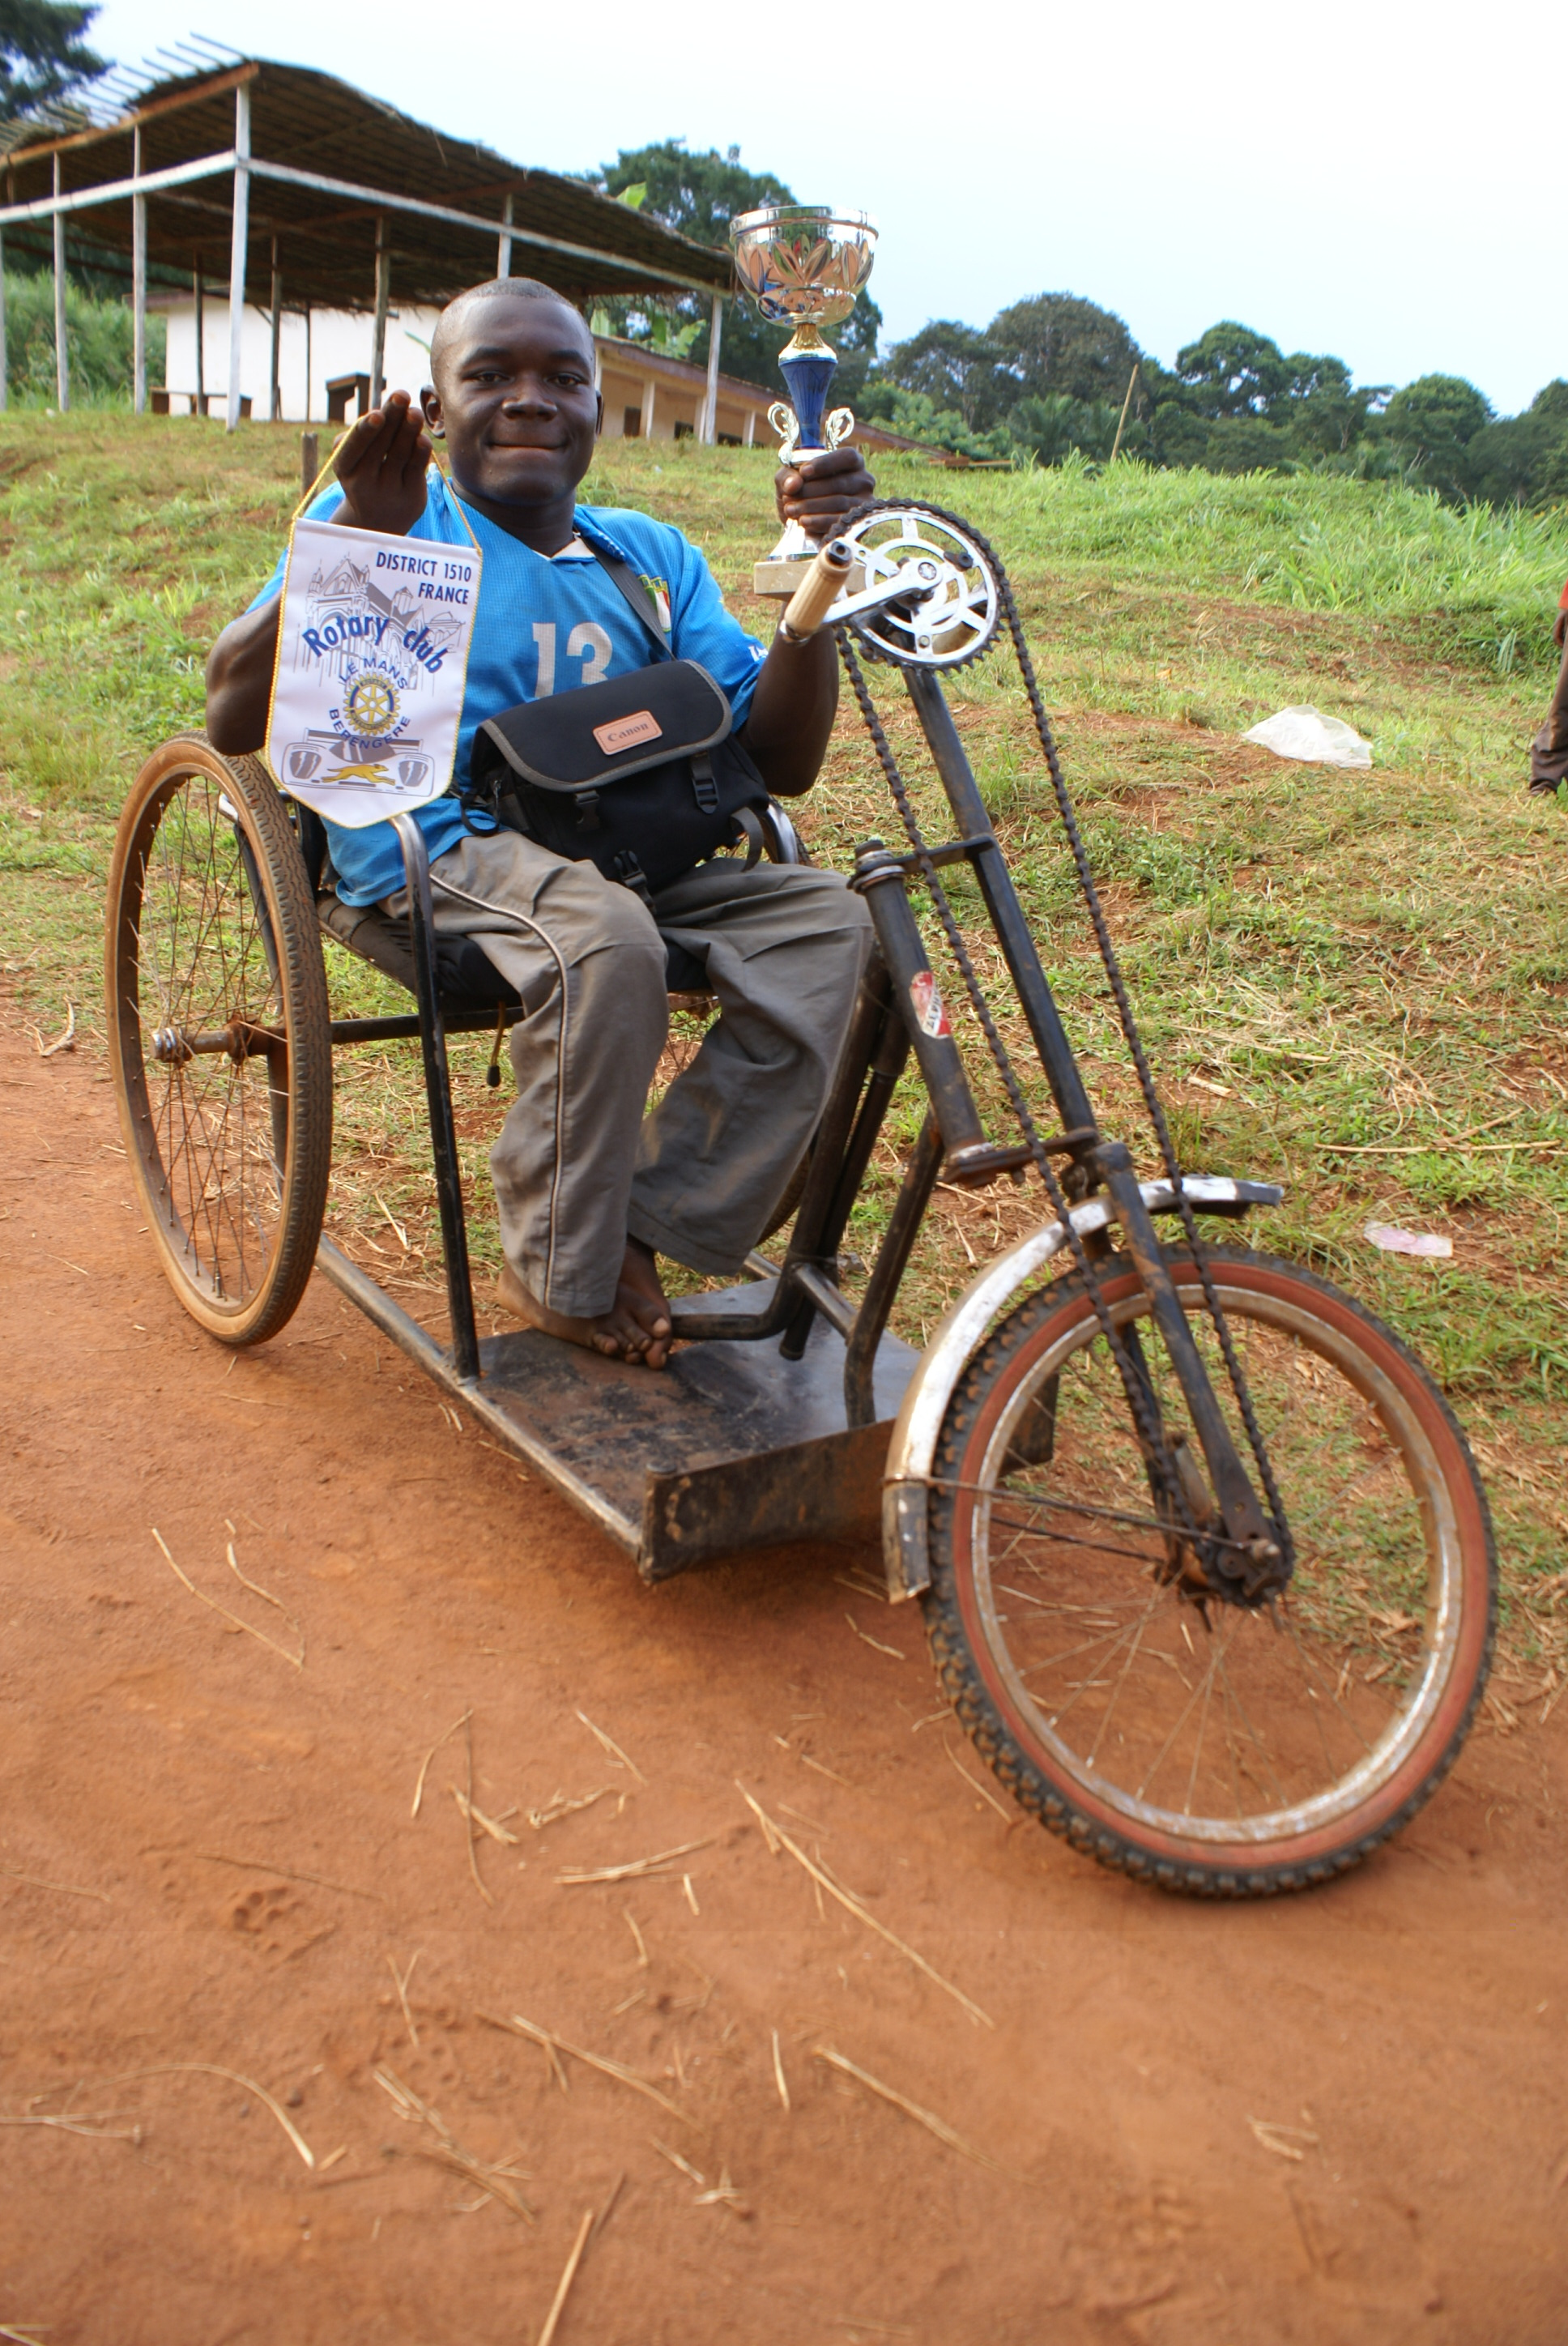 Ibrahim_Soccer_Coach_On_The_Wheelchair2013.JPG